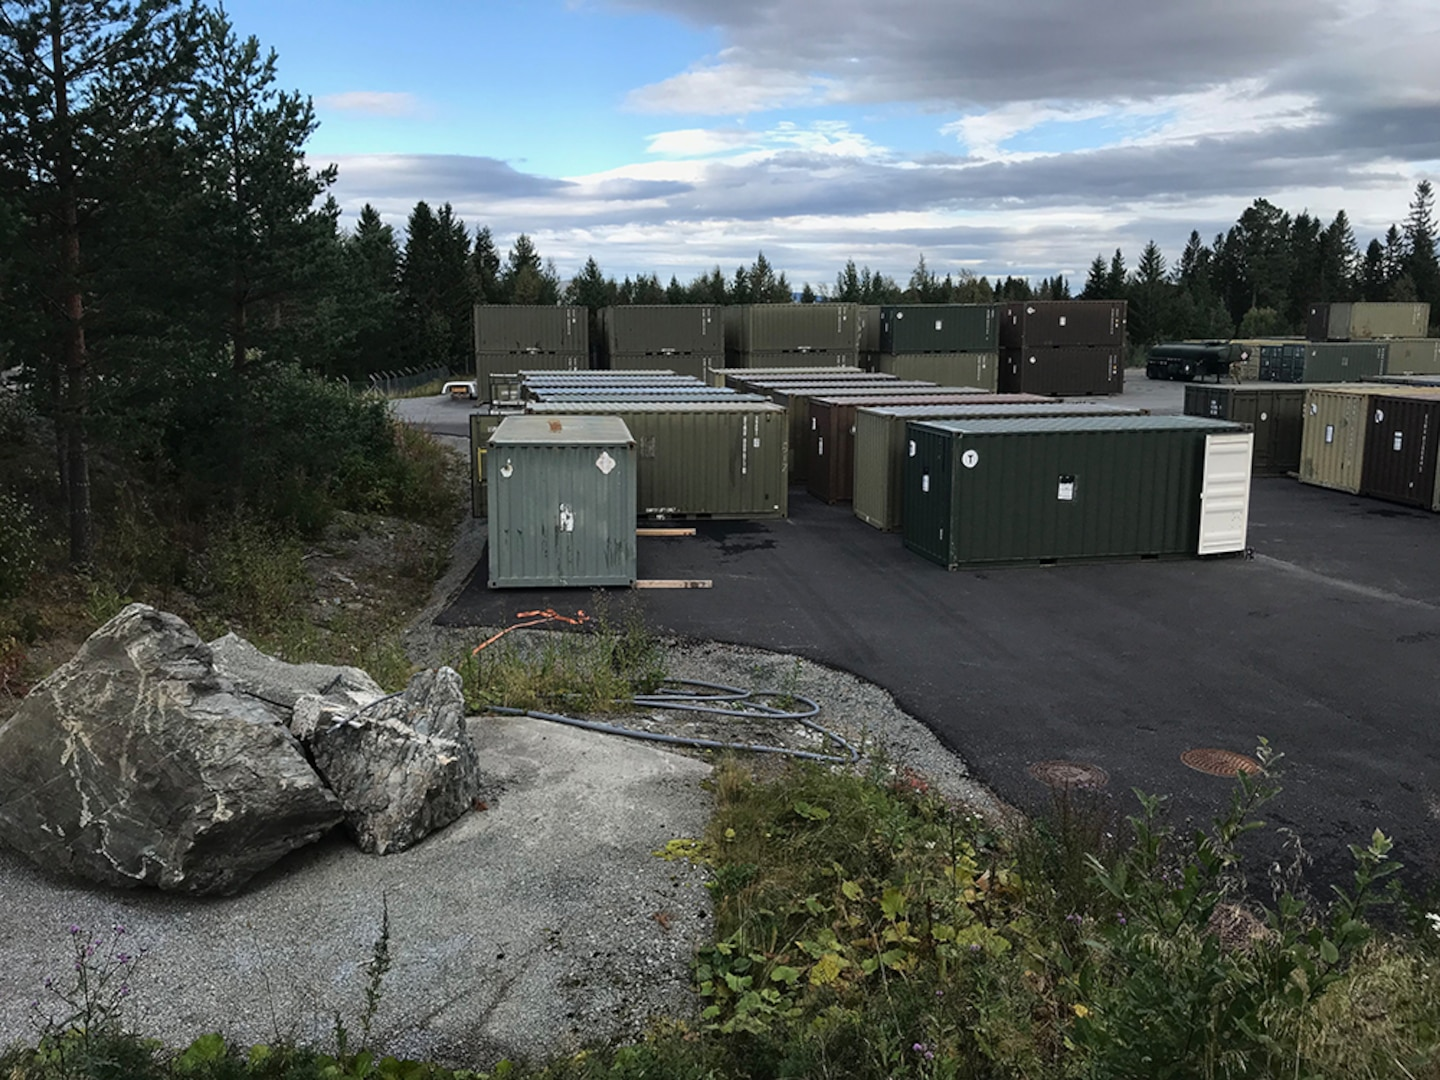 Shipping containers of used, excess and mission-obsolete materials are staged outside a cave facility in Norway, where DLA Disposition Services reps recently visited to help with training and preparation for Marine Corps property disposal.